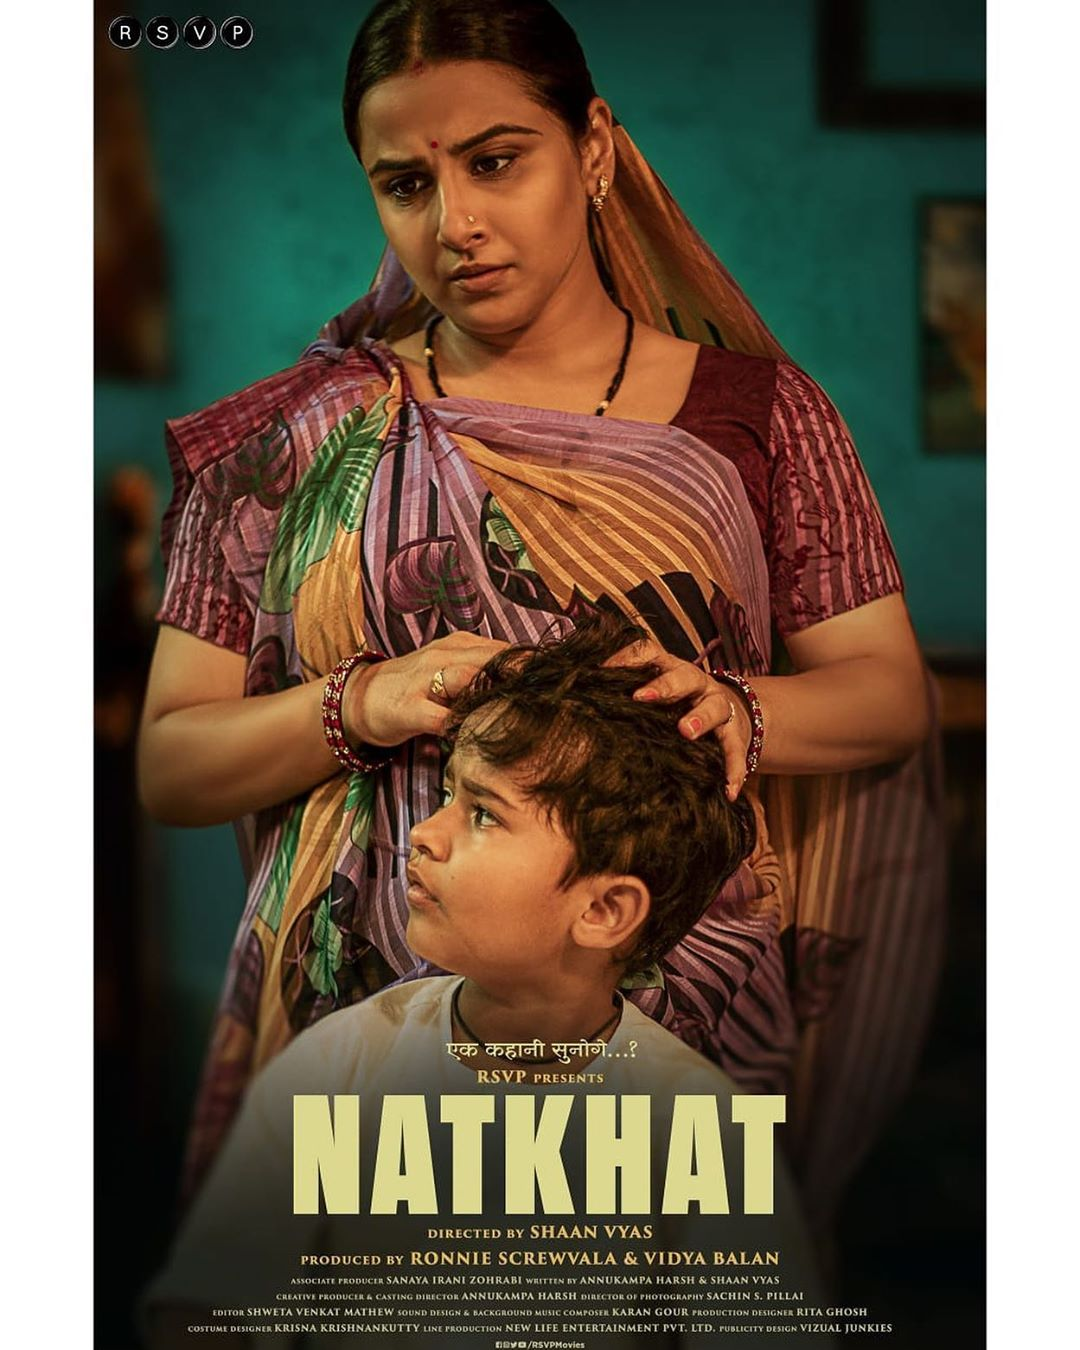 vidya-balan-debuts-as-producer-with-natkhat-short-film-also-playing-lead-role-shares-first-look-poster